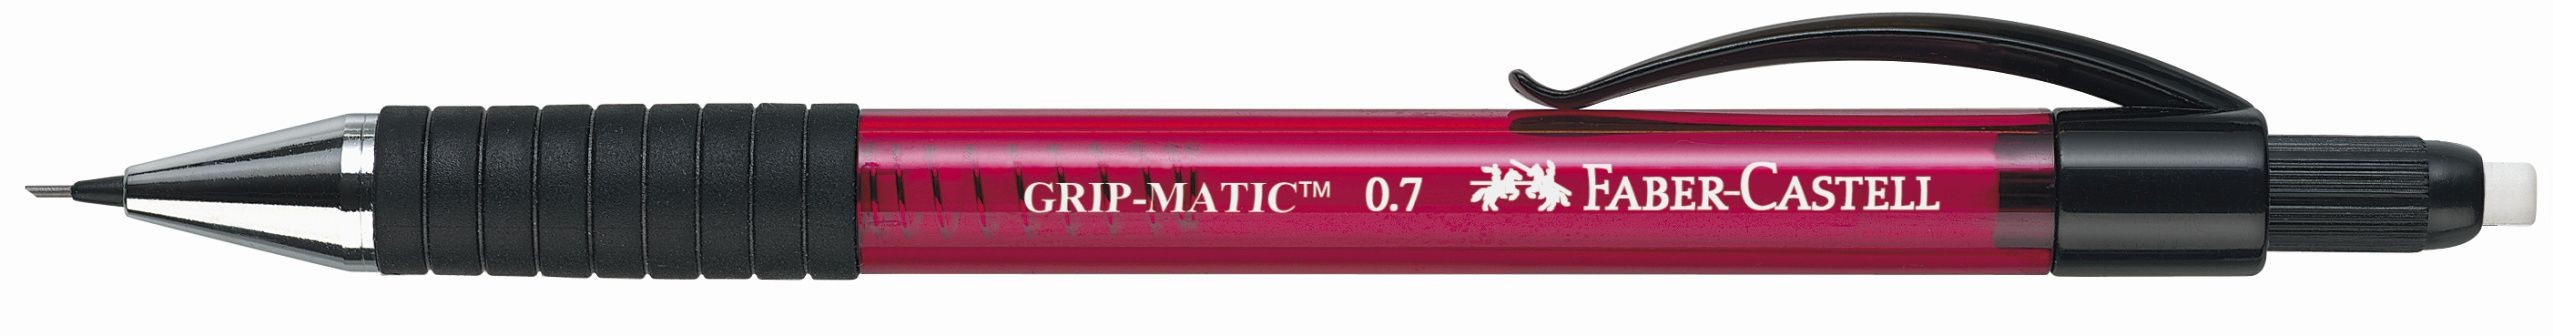 CREION MECANIC 0.7MM ROSU GRIP-MATIC 1377 FABER-CASTELL